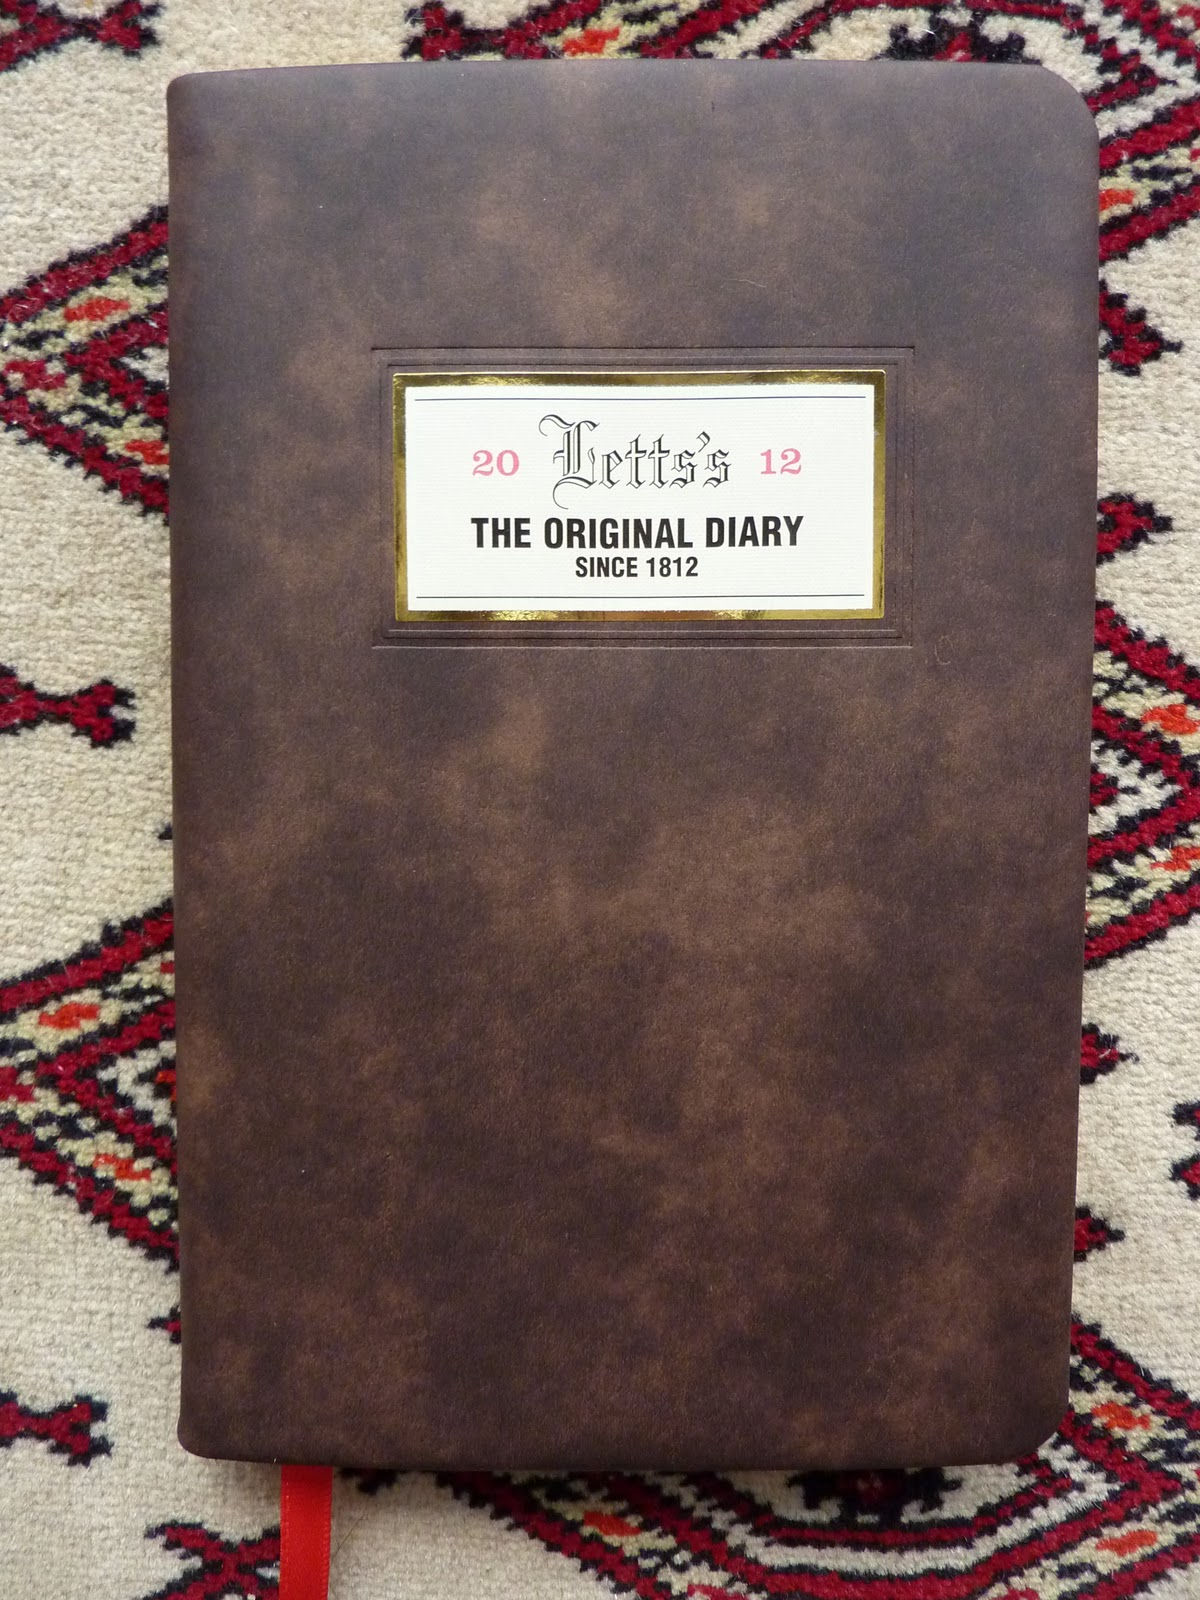 Letts Bicentenary Diary